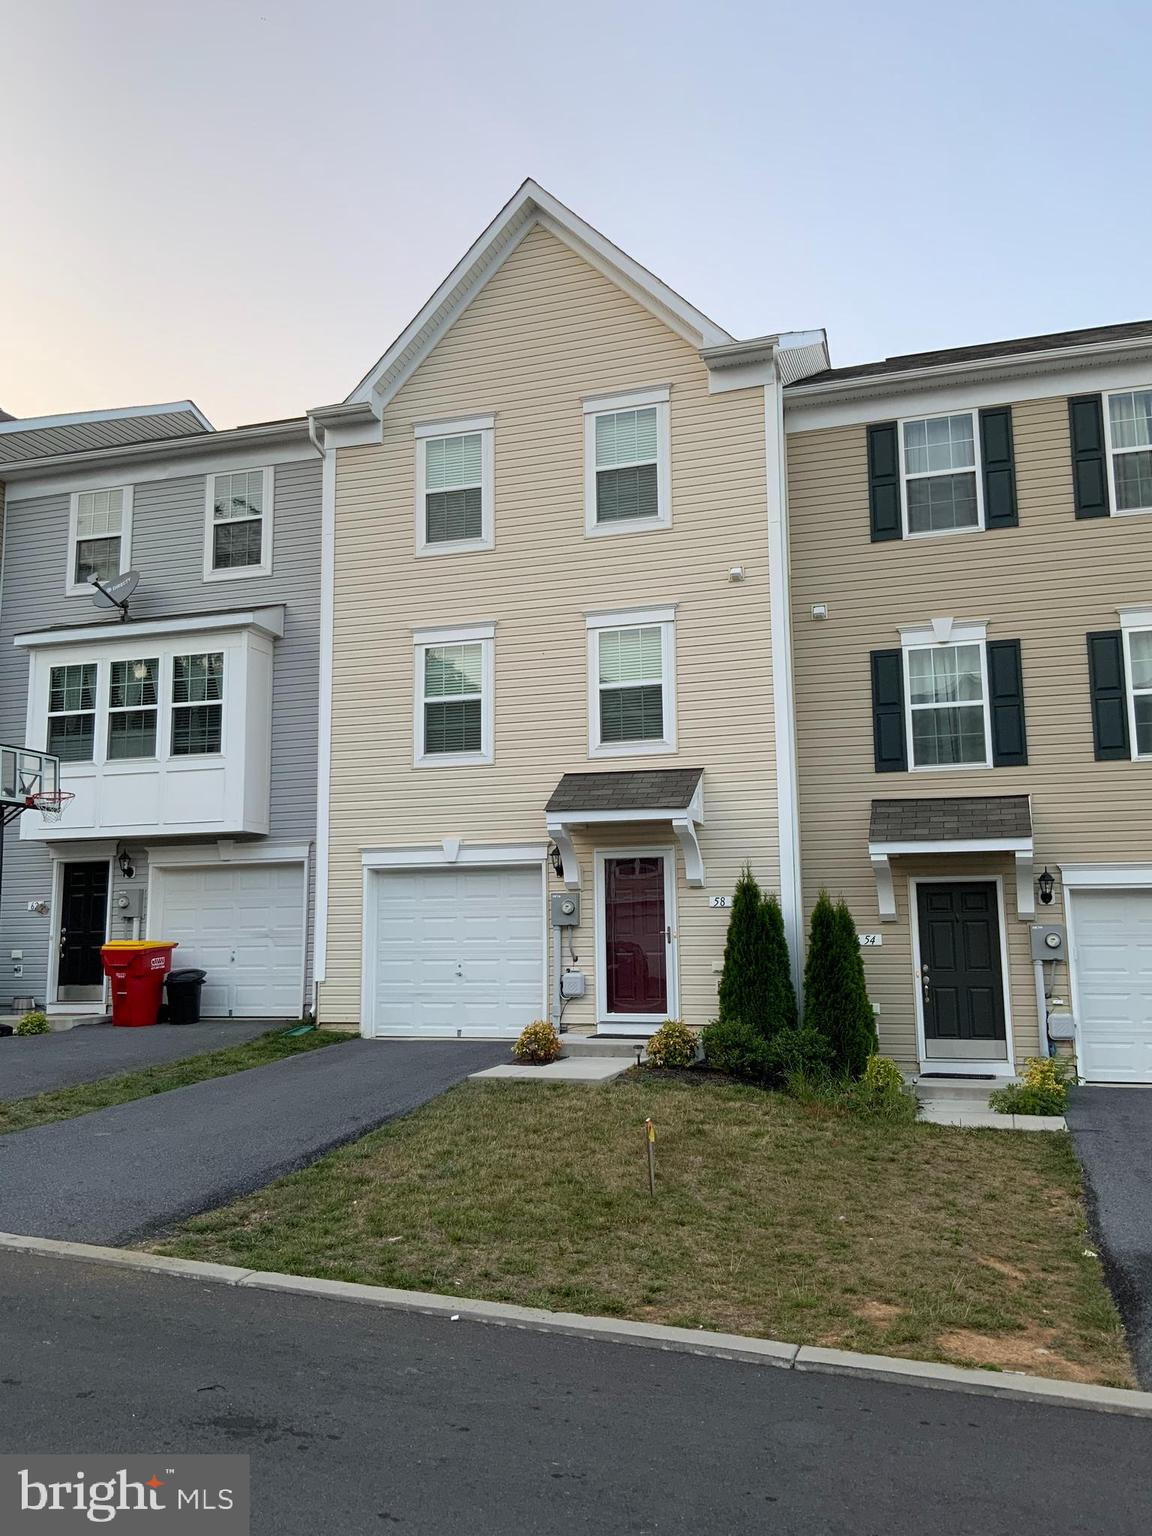 Come take a look at this immaculate townhome in Hedgesville.  Only 4 years old, this home has been t